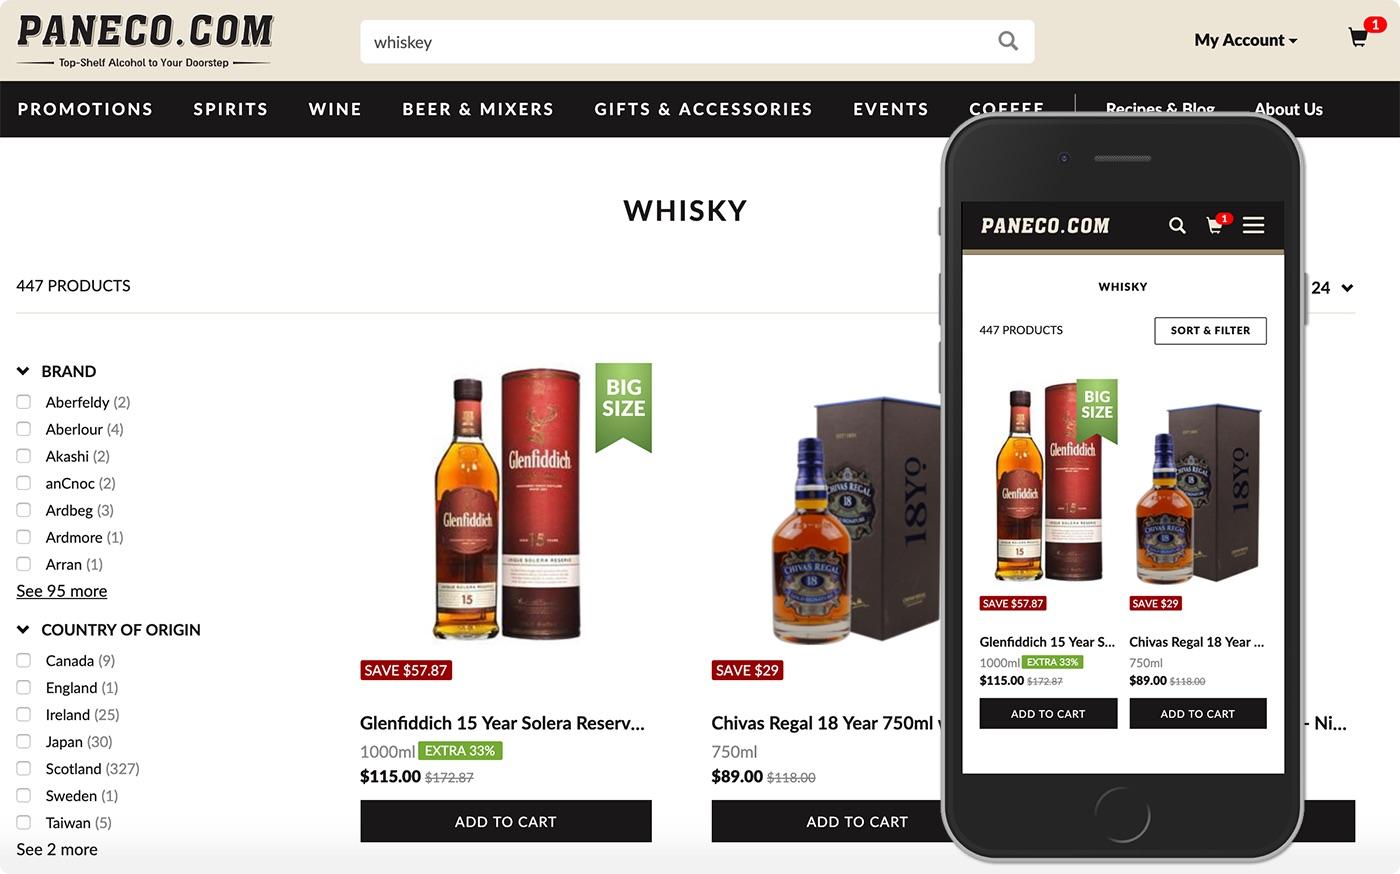 An example of a search for Whiskey